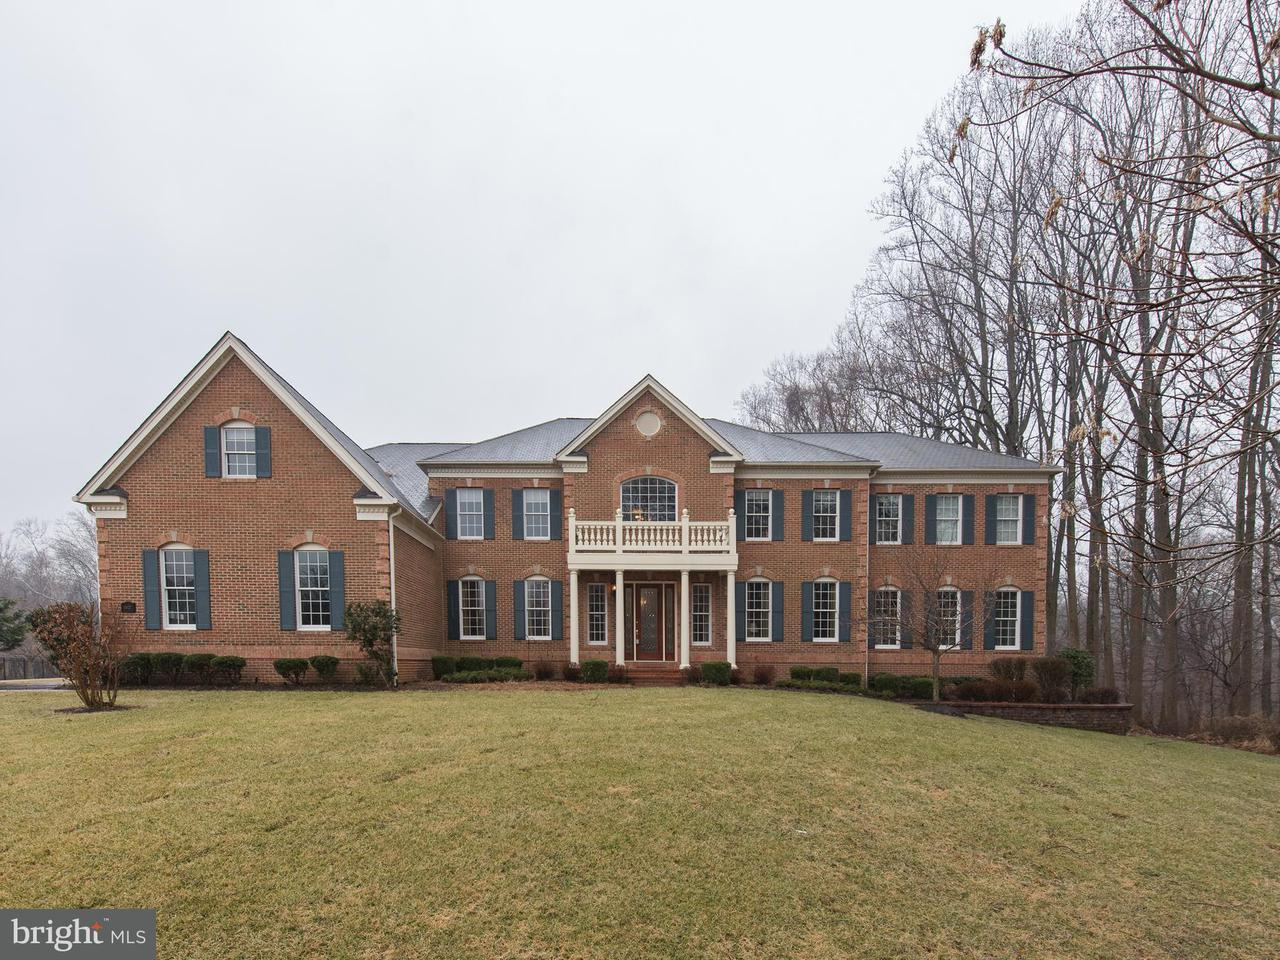 Casa Unifamiliar por un Venta en 11627 Fox Chase Court 11627 Fox Chase Court Ellicott City, Maryland 21042 Estados Unidos